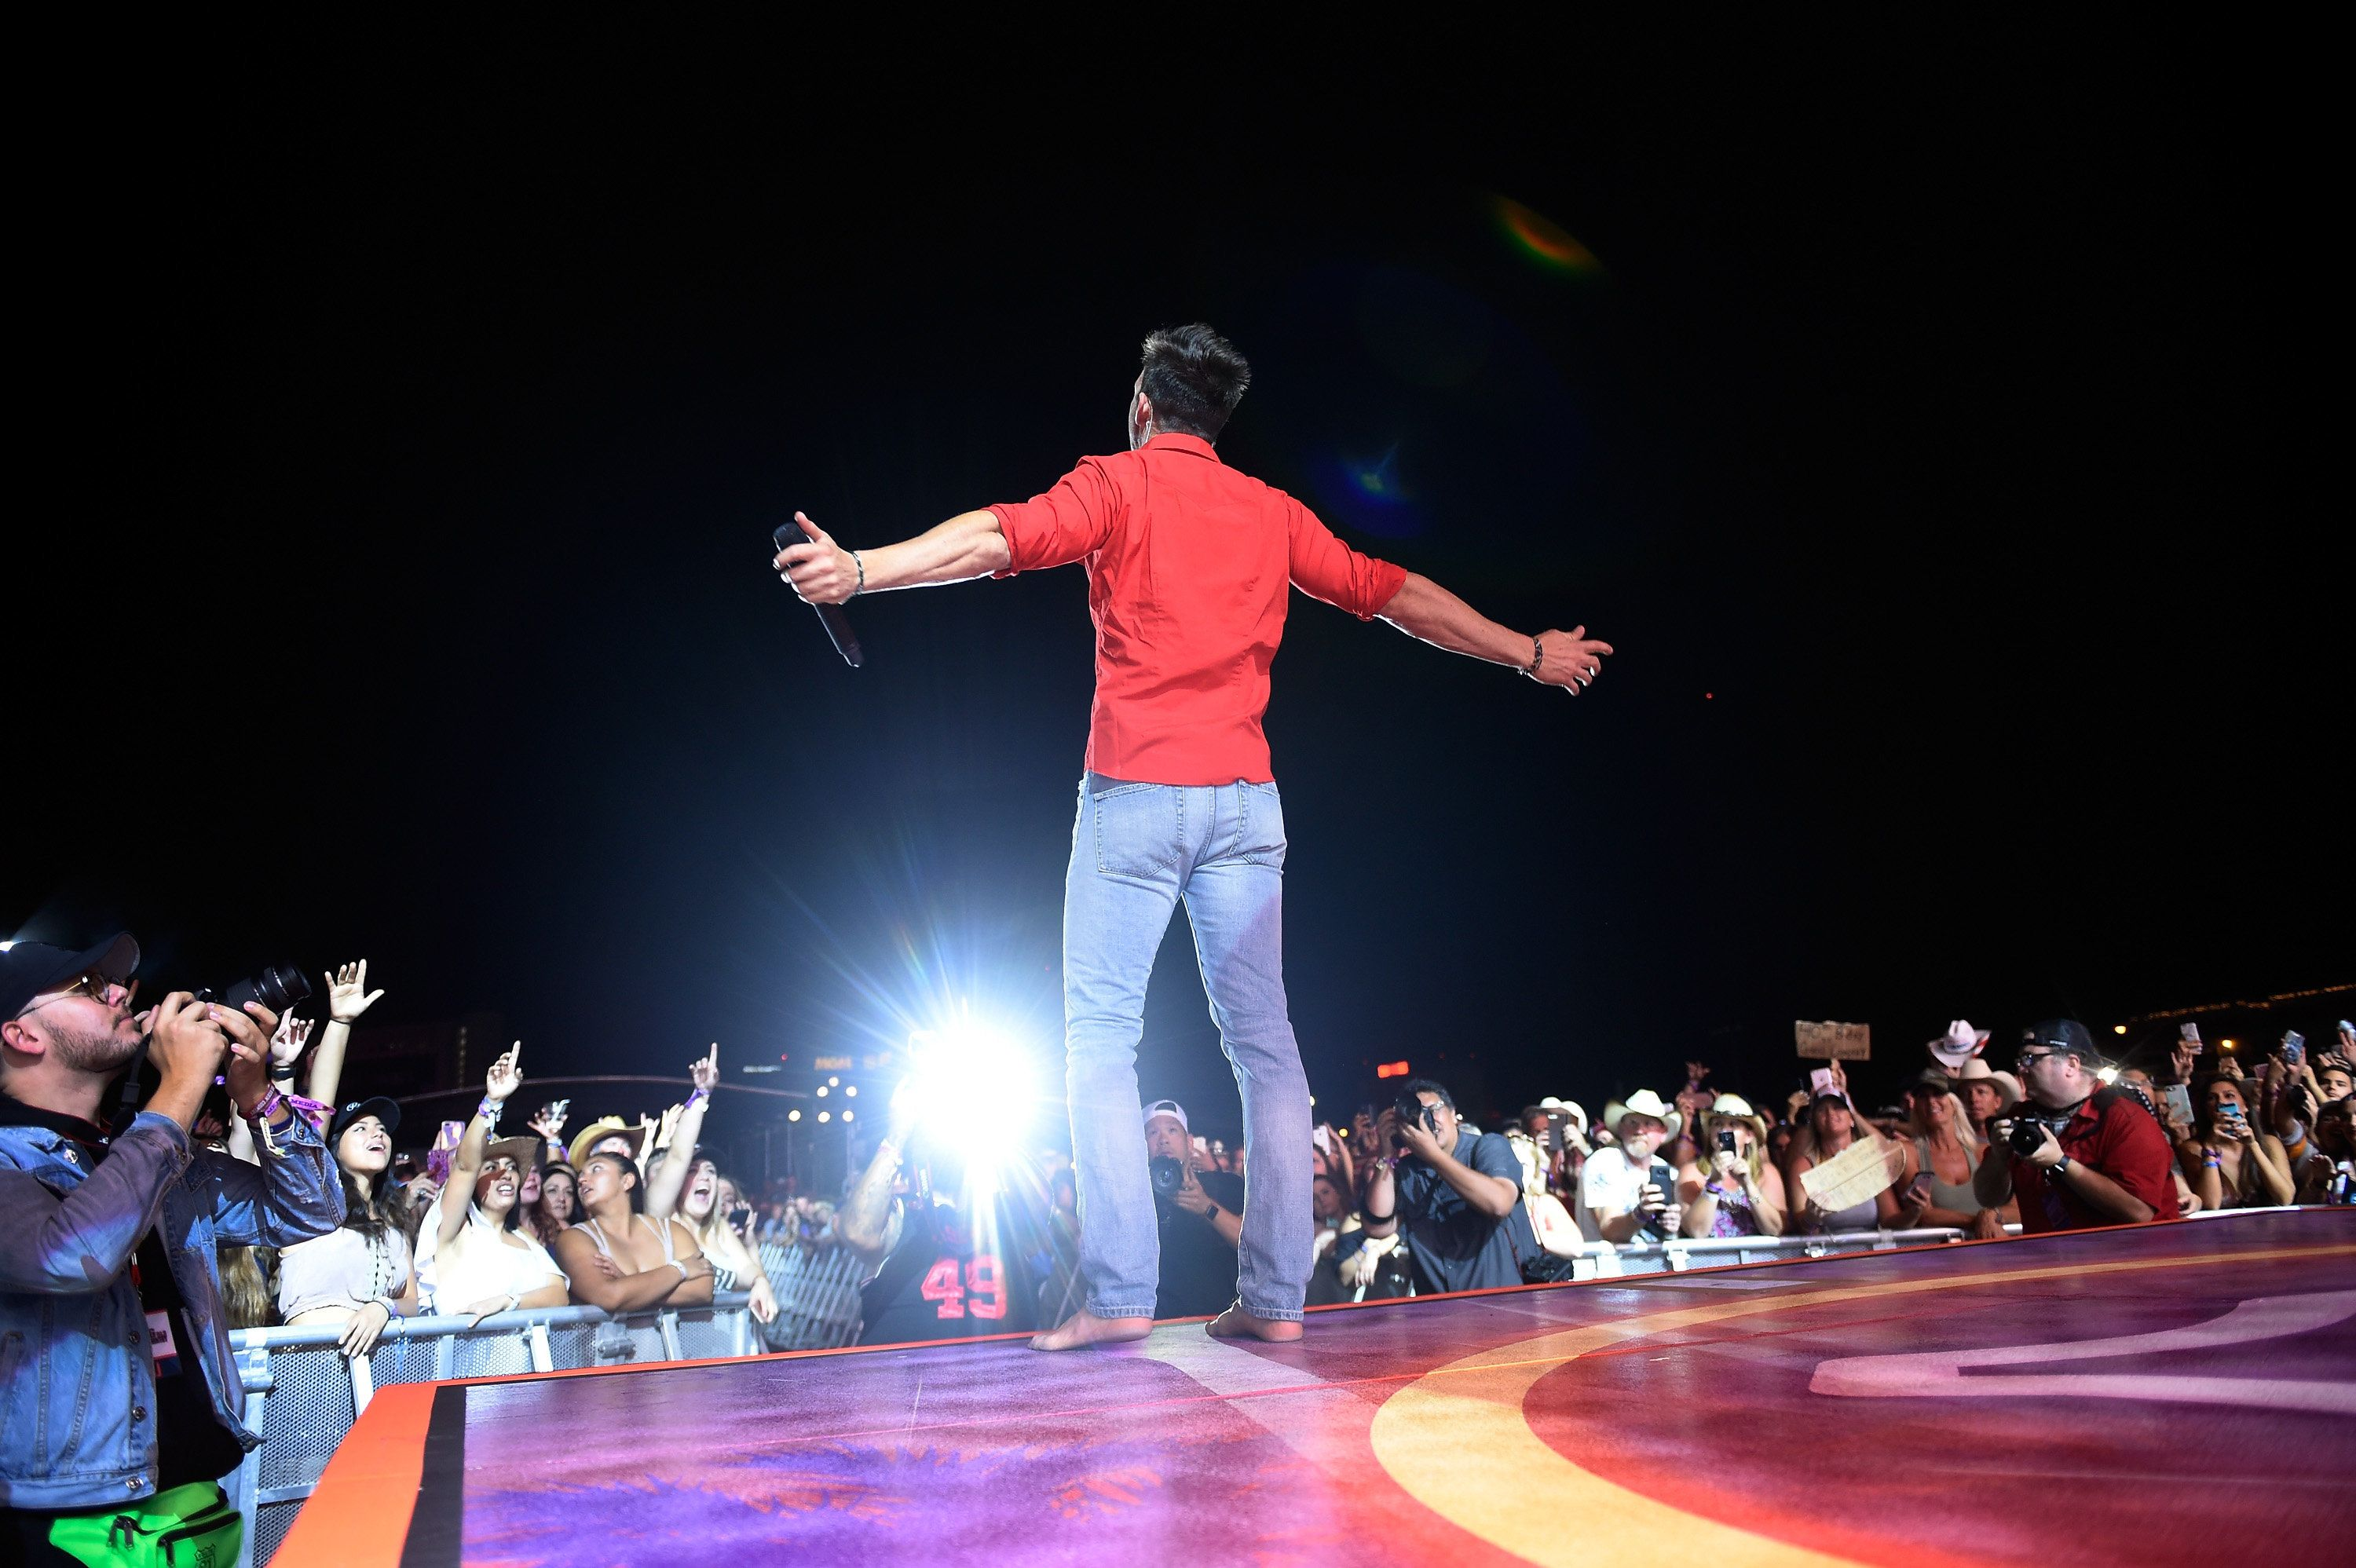 LAS VEGAS, NV - OCTOBER 01:  Recording artist Jake Owen performs during the Route 91 Harvest country music festival at the Las Vegas Village on October 1, 2017 in Las Vegas, Nevada.  (Photo by David Becker/Getty Images)